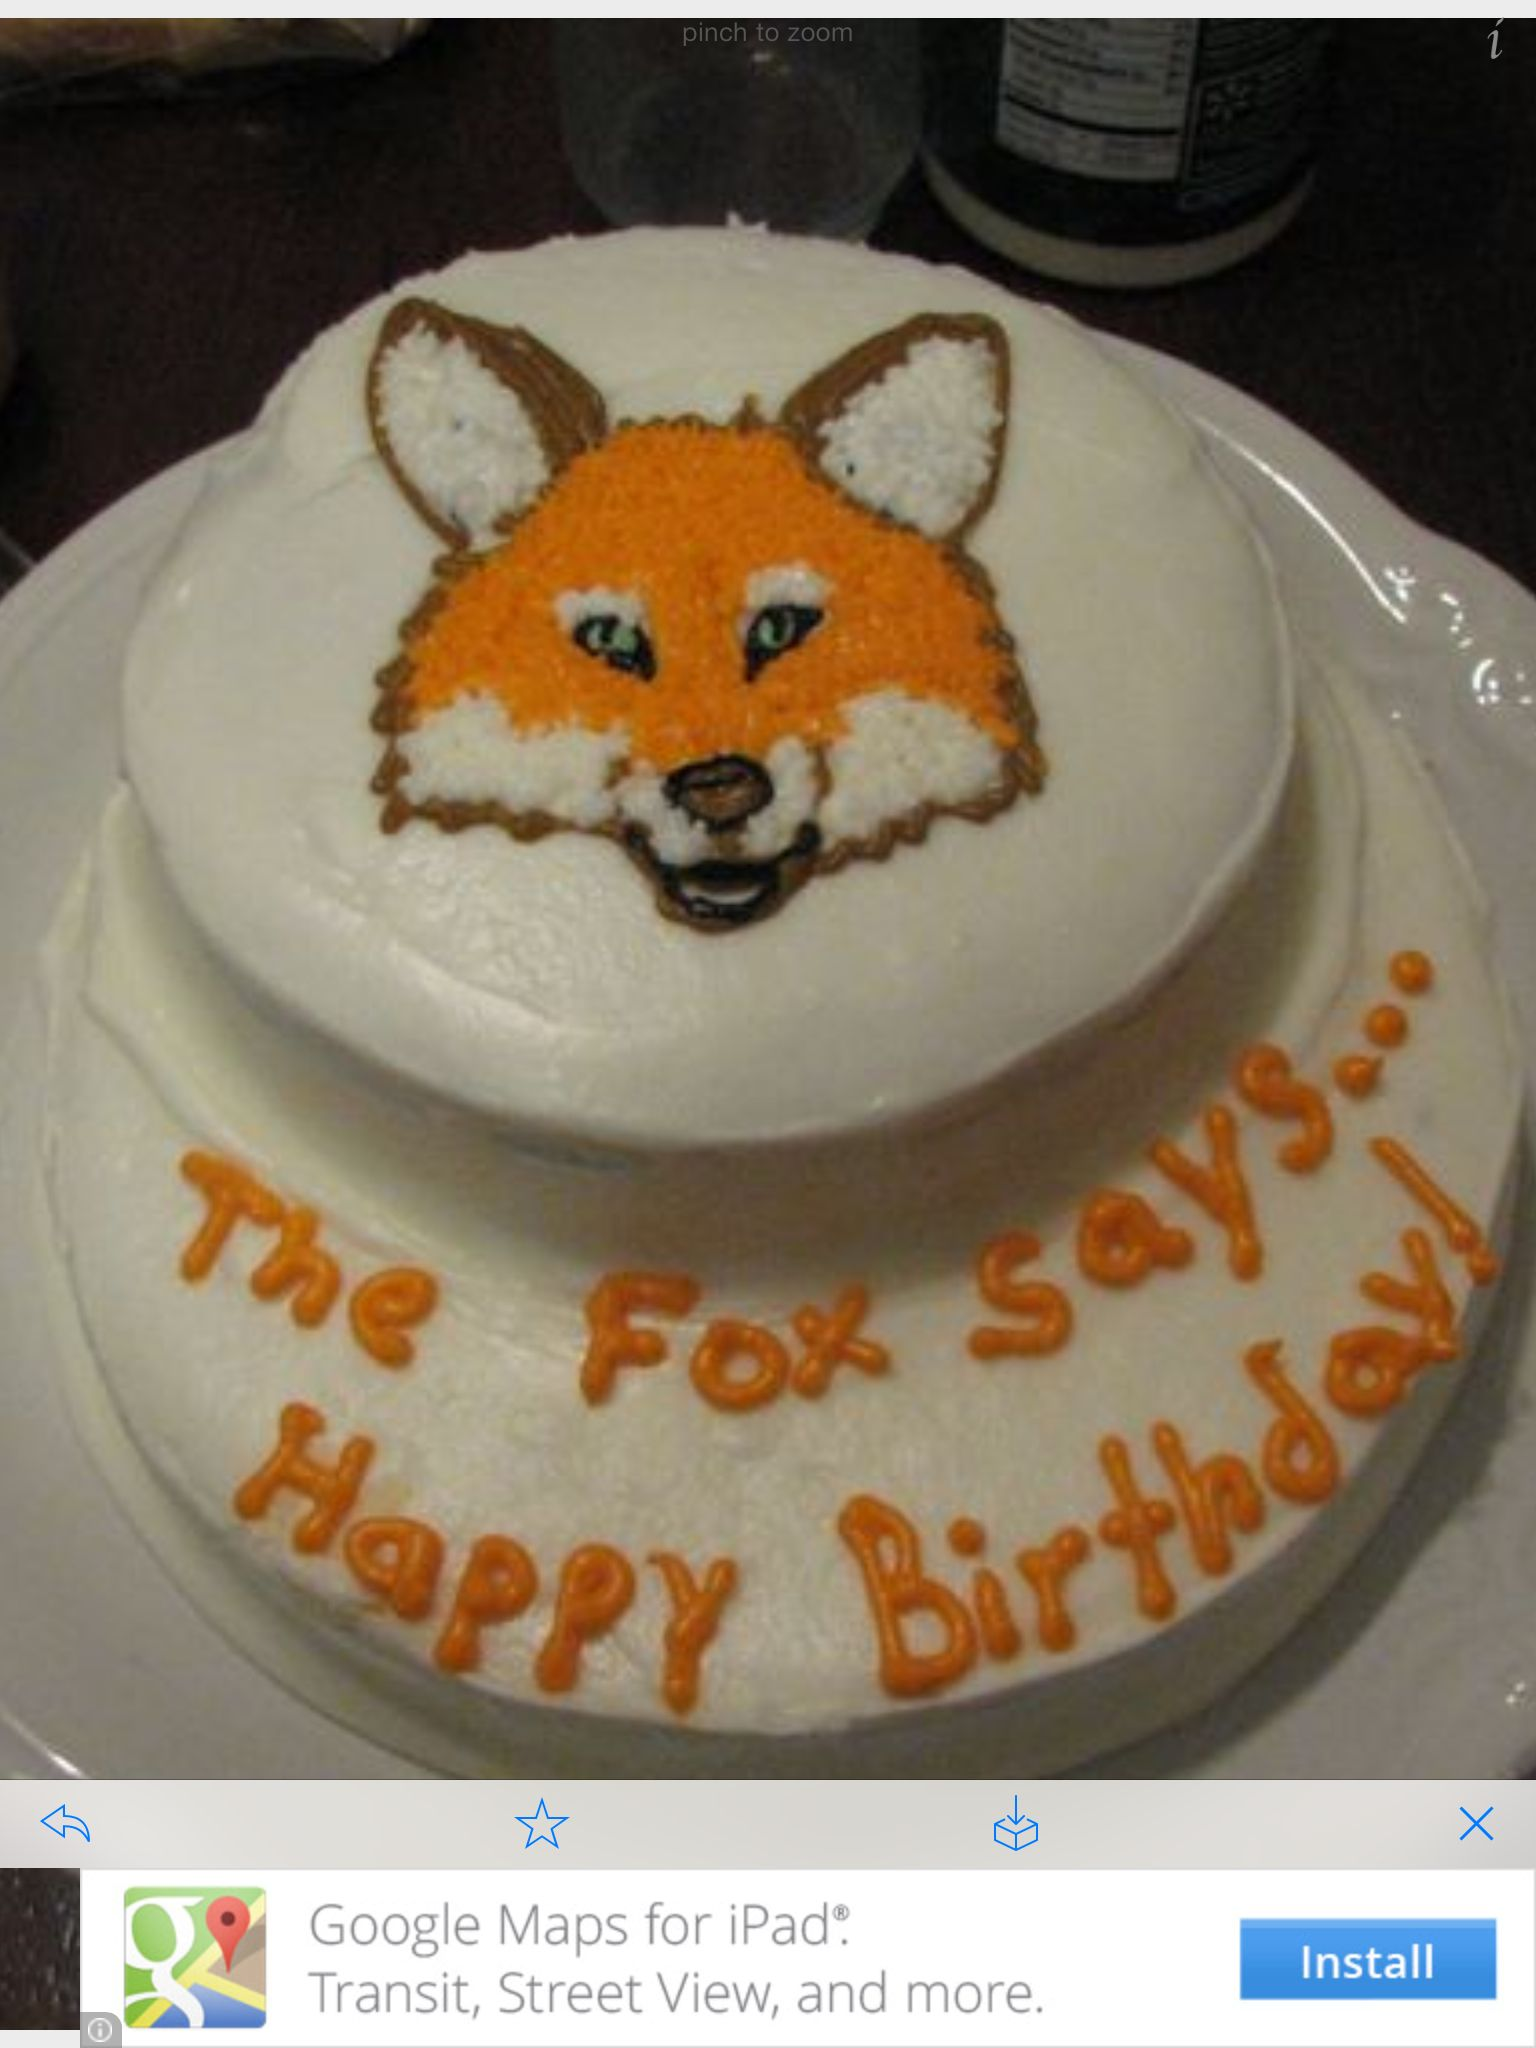 What Does The Fox Say Happy Birthday